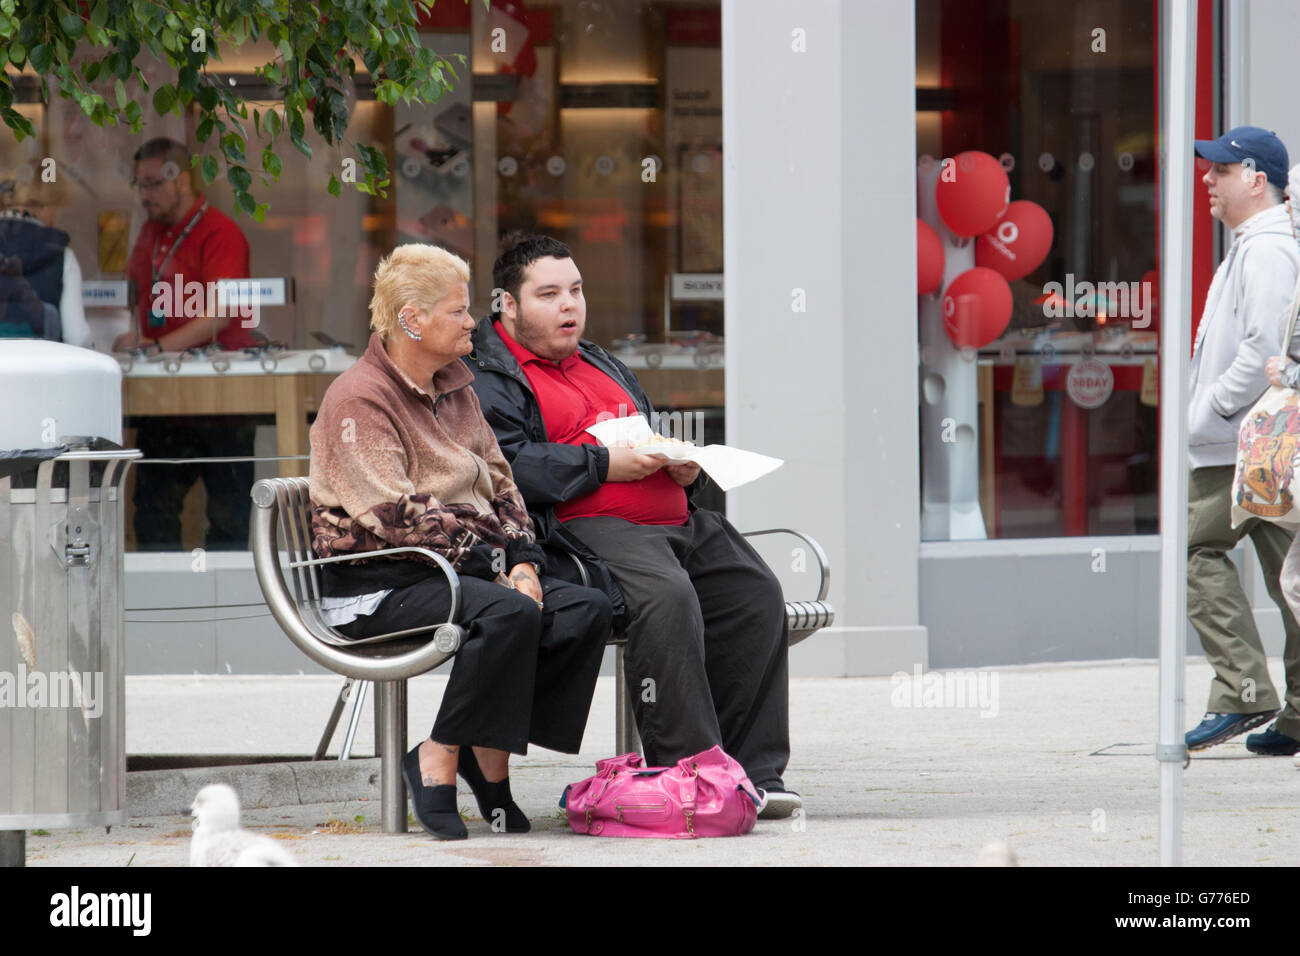 Clacton Town Centre couple eating chips while seated in Clacton, Essex - Stock Image